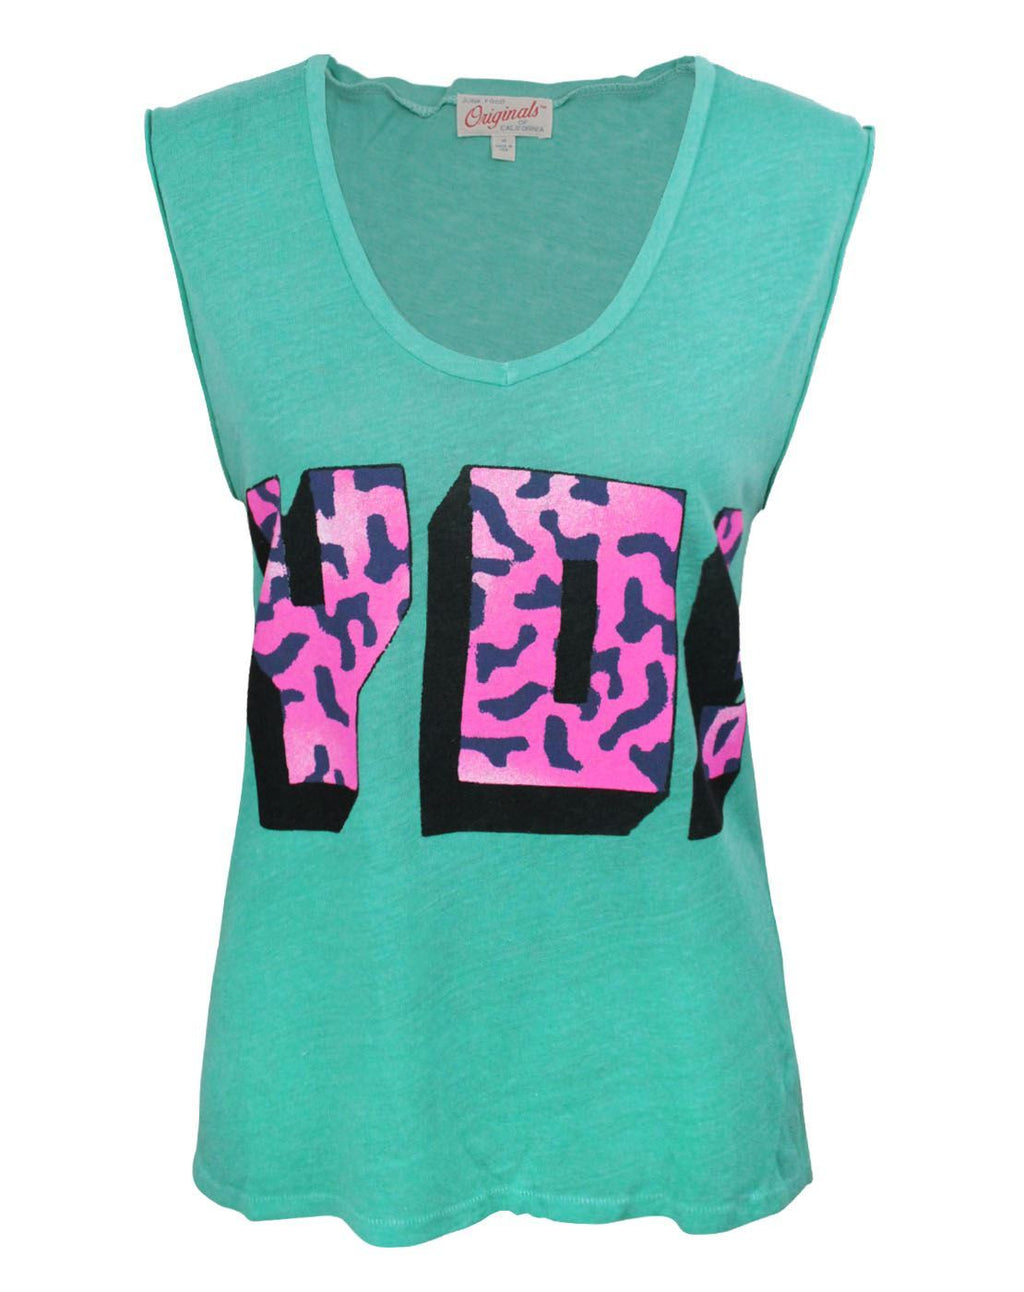 Junk Food Yo Women's Vest